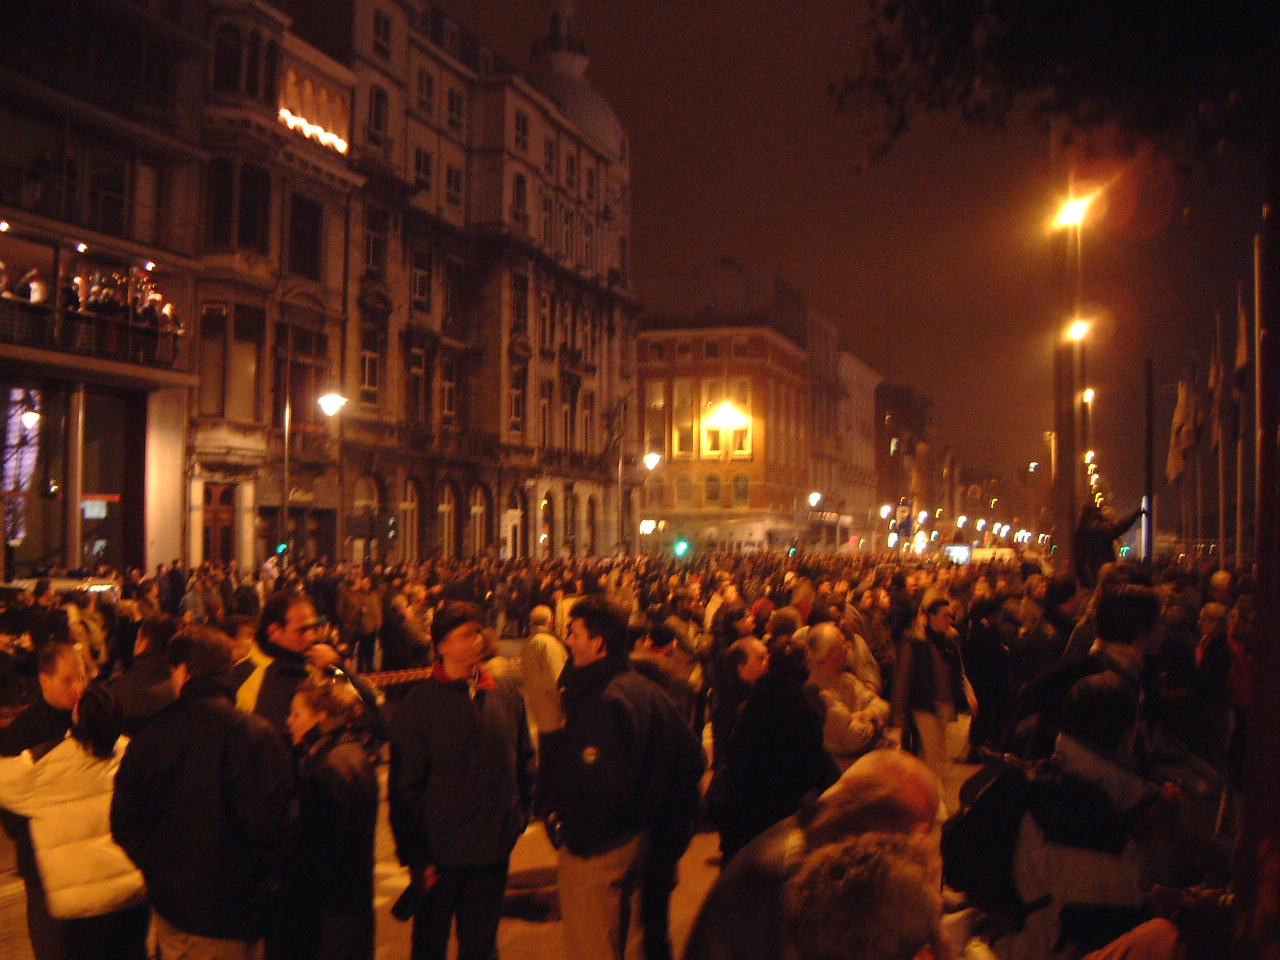 nature characters humanoids maartent crowd night mob demonstratin people street cityscape protest